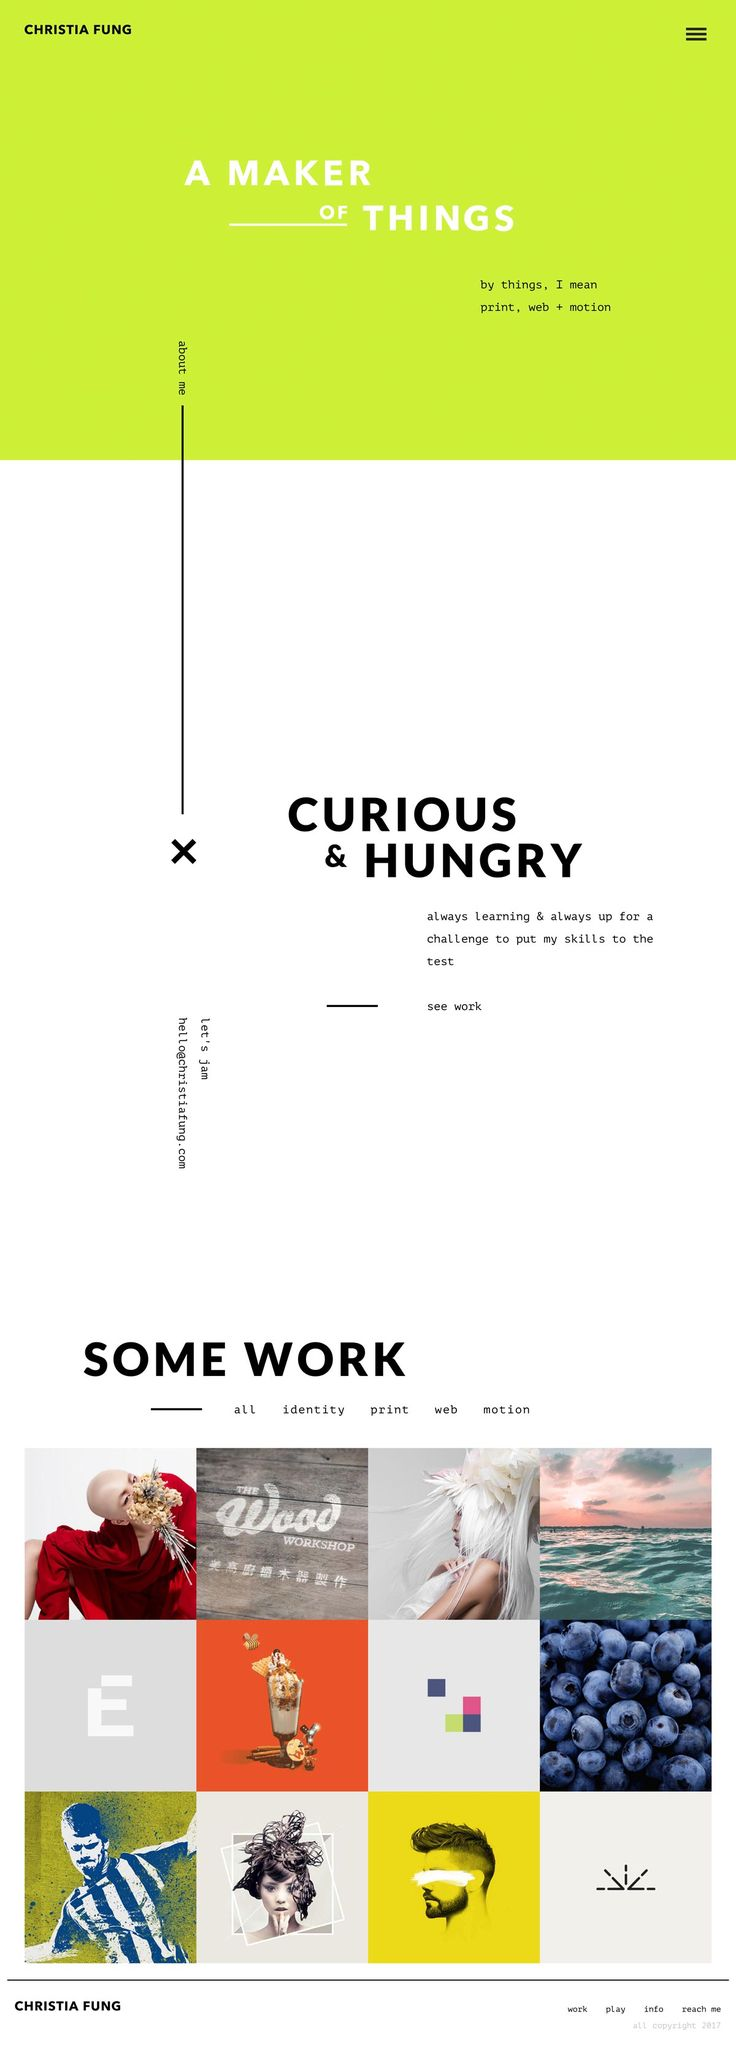 Christia Fung http://mindsparklemag.com/website/christia-fung/ Christia Fung has created a new website that has been featured on Mindsparklemag for its nice webdesign and modern beautiful portfolio with great typography